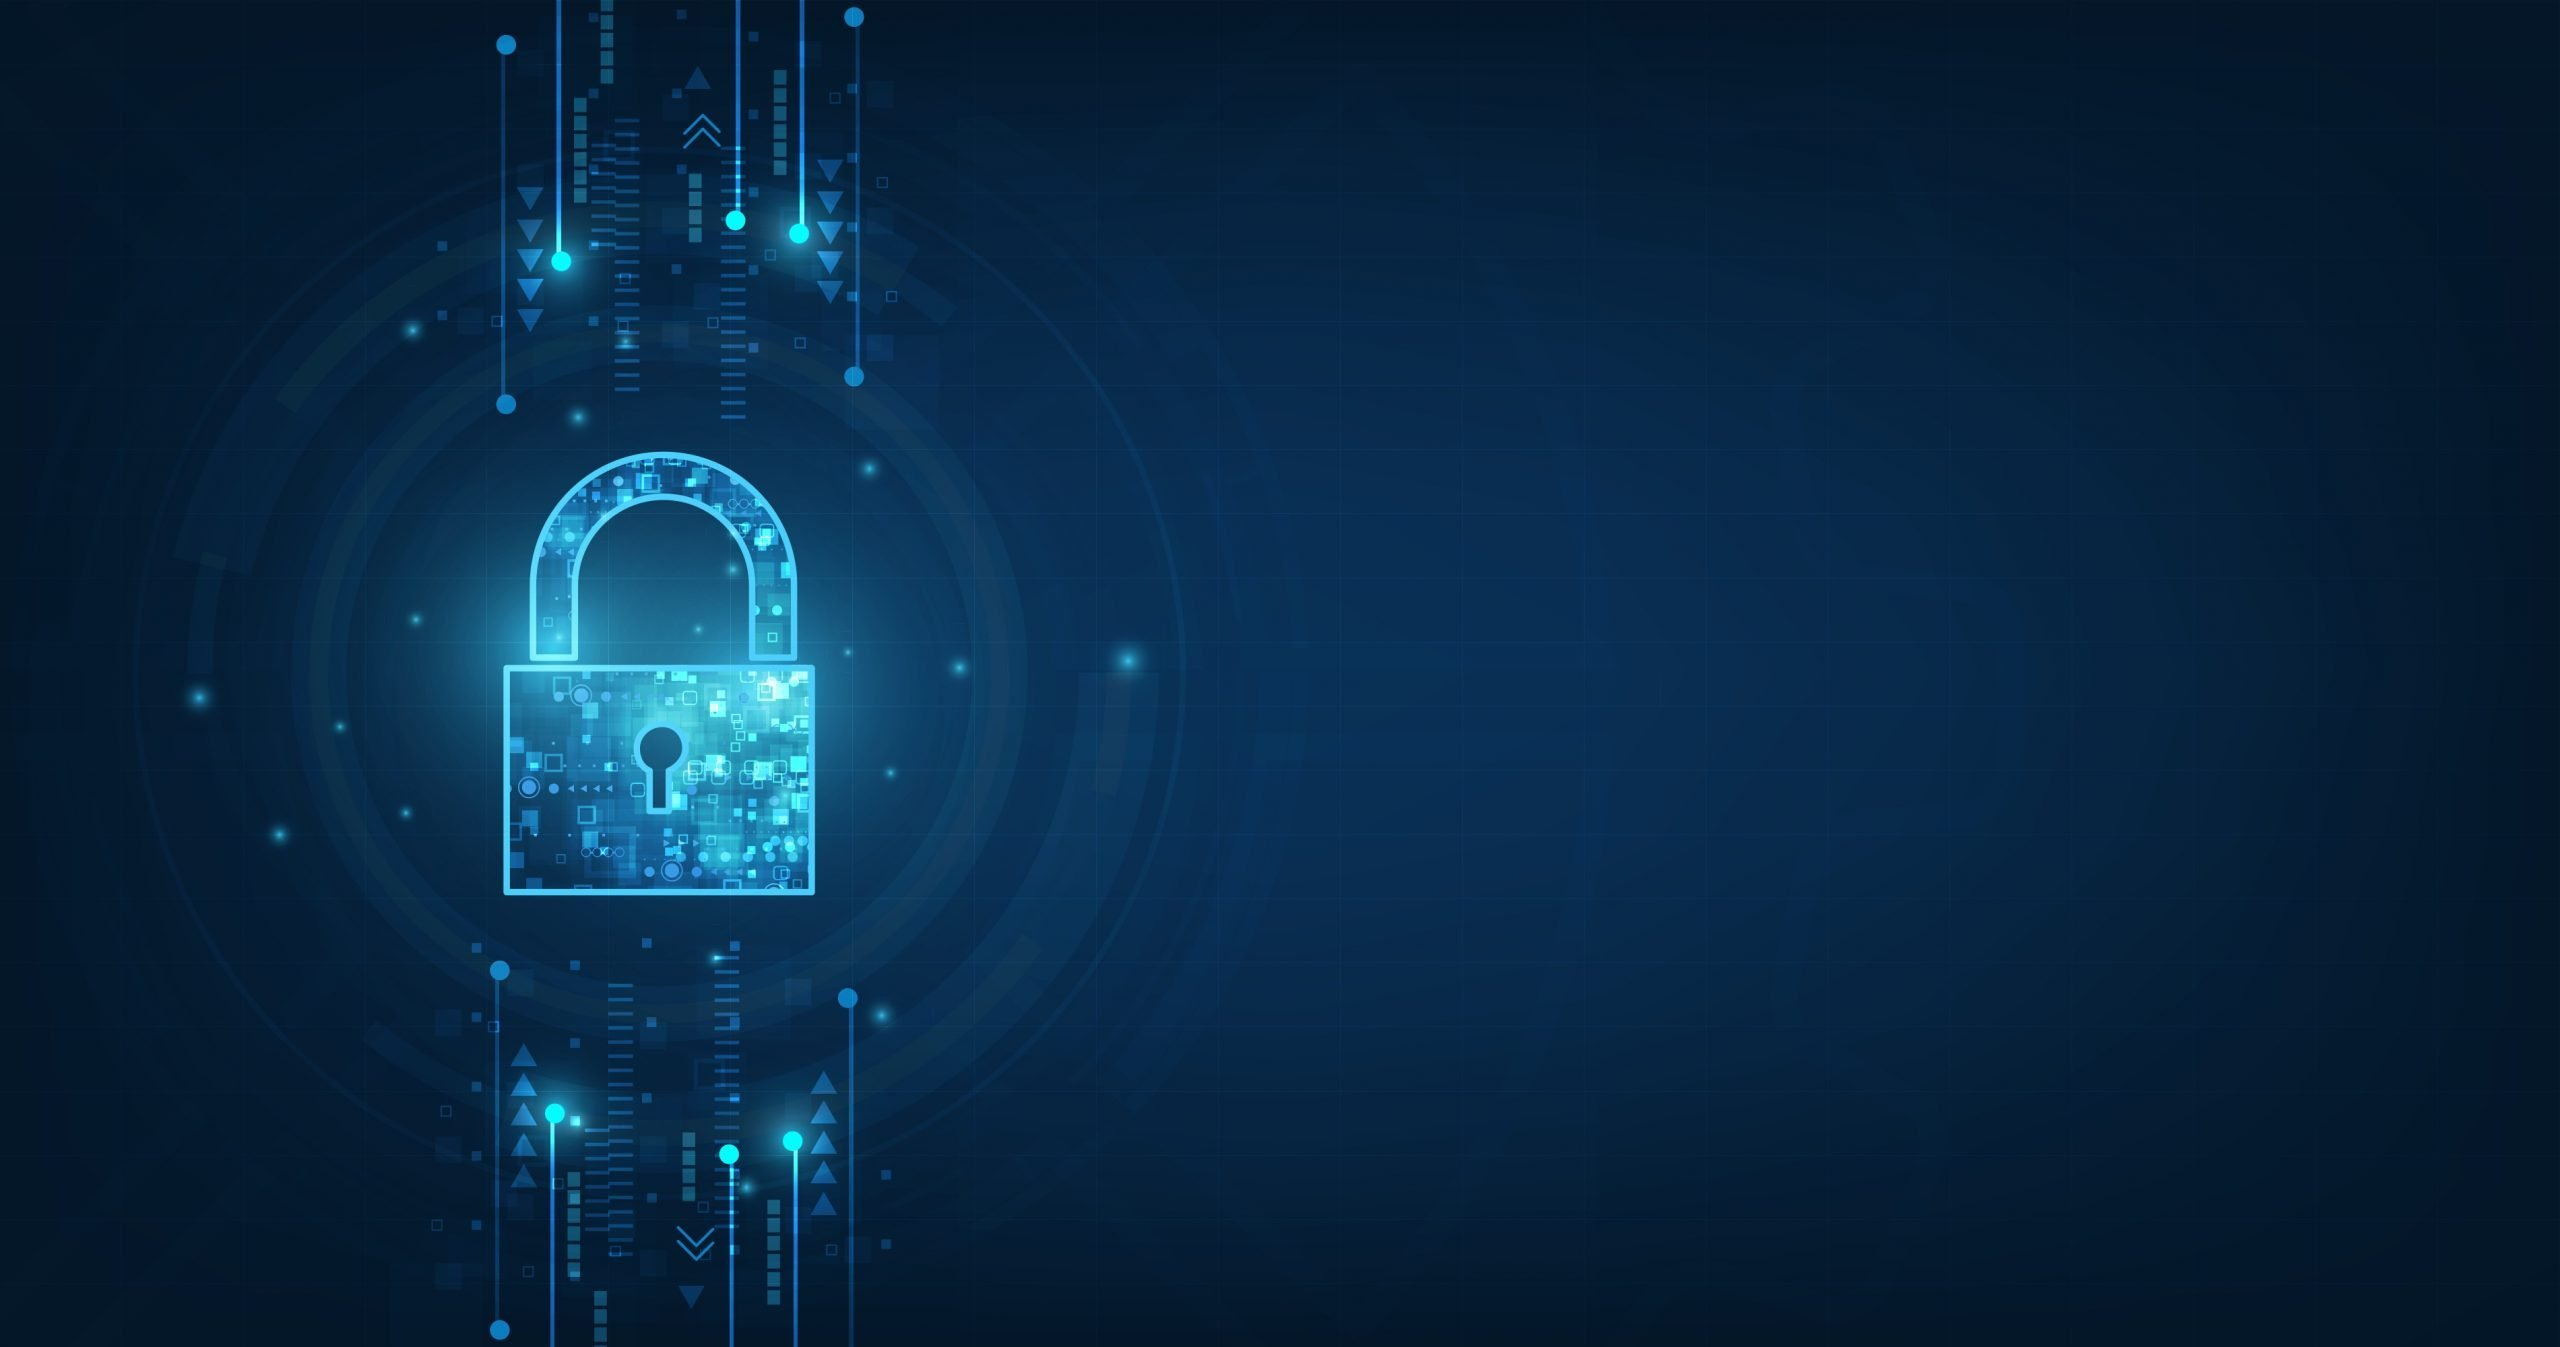 IT Security: 8 reasons to secure your business